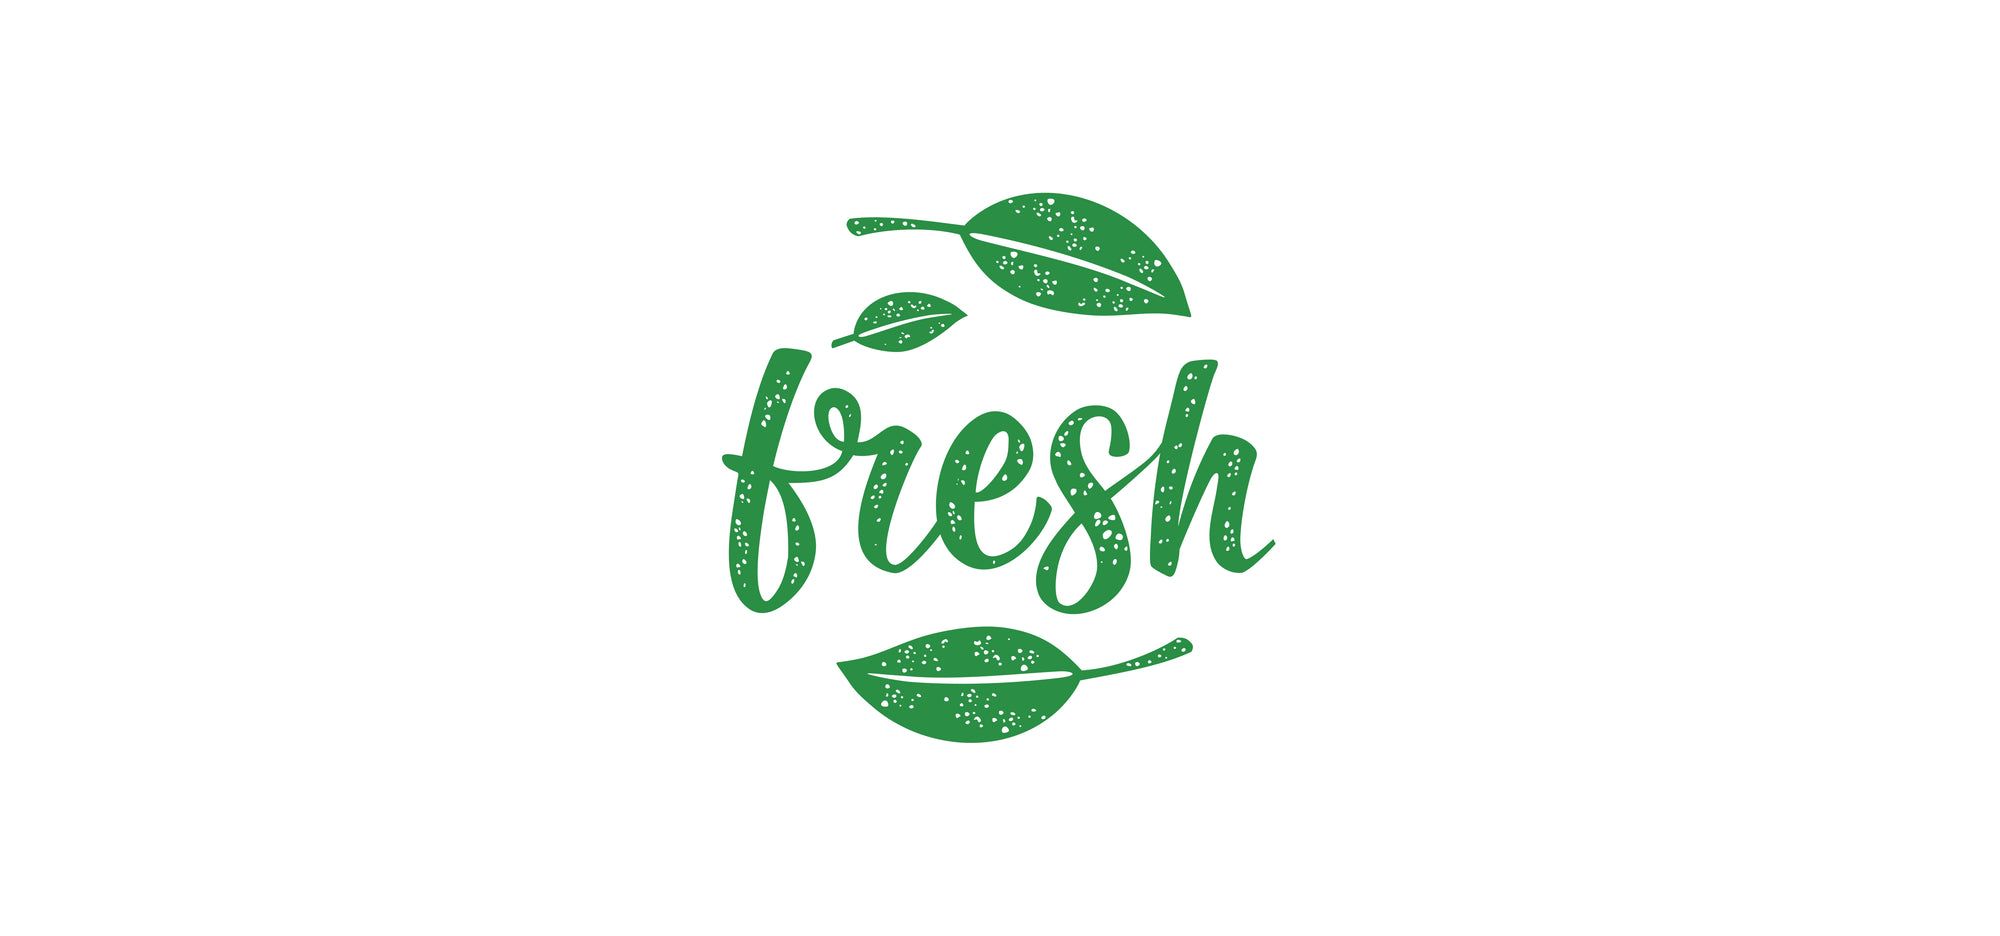 We only harvest fresh, deliver fresh, and keep all greens fresh until it's replenished.